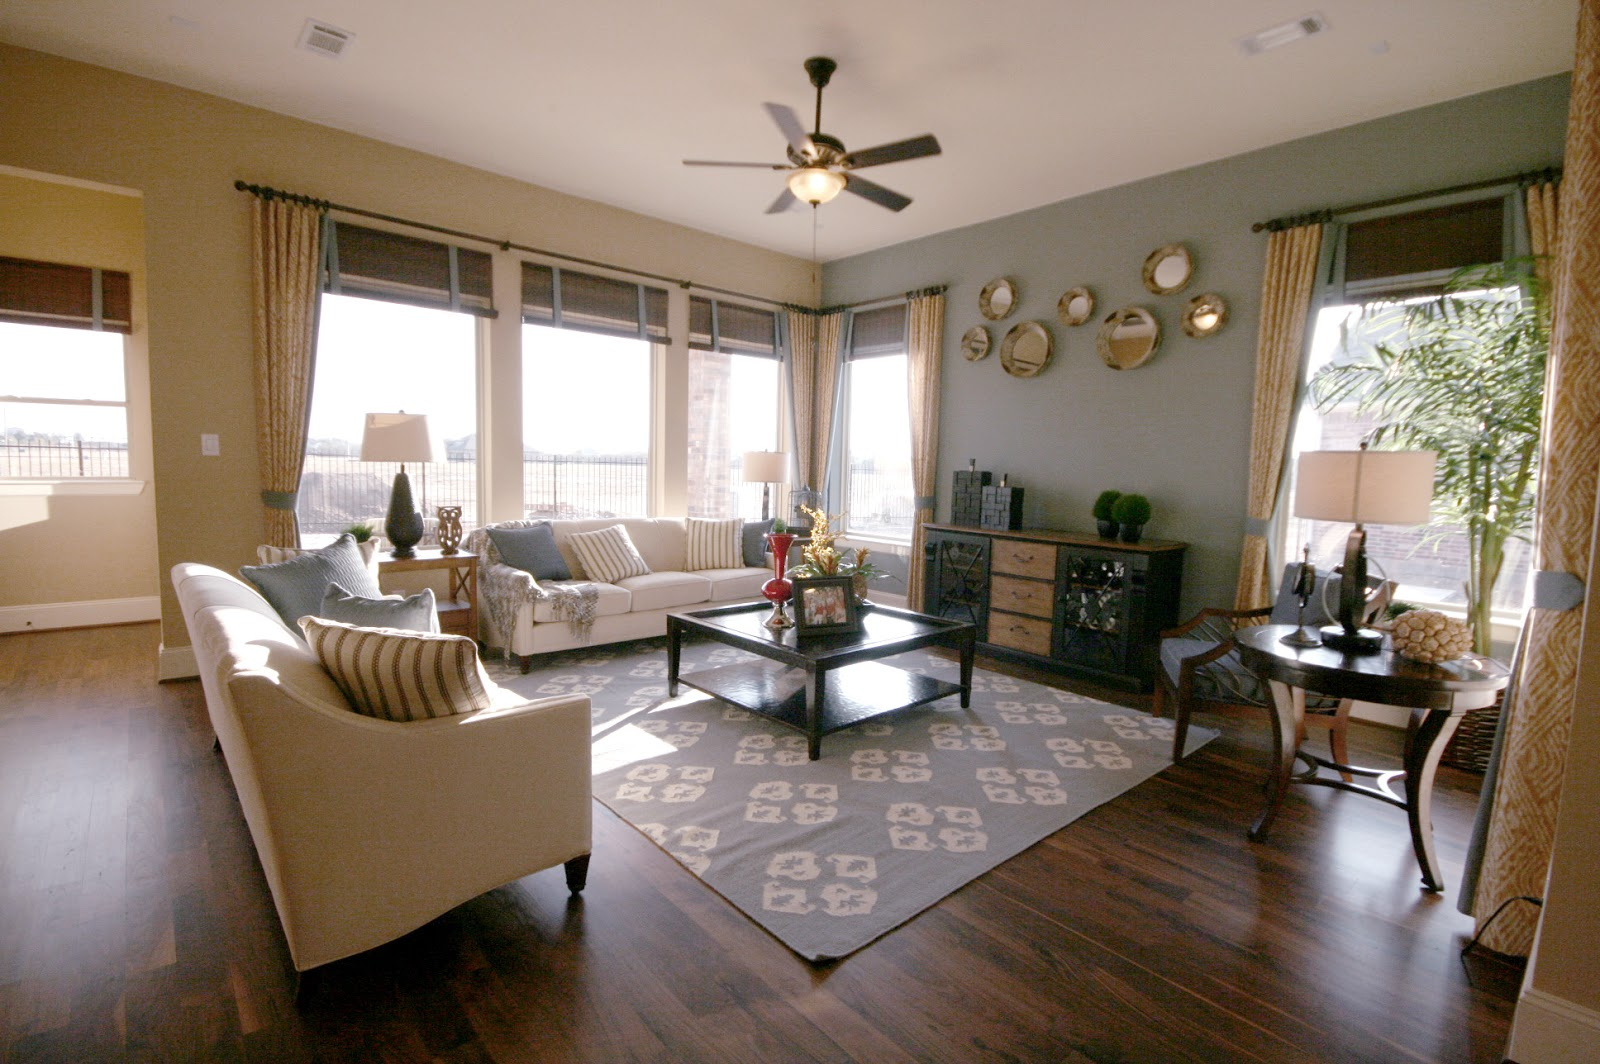 Village Builders Patio Homes In Cinco Ranch Are Back By